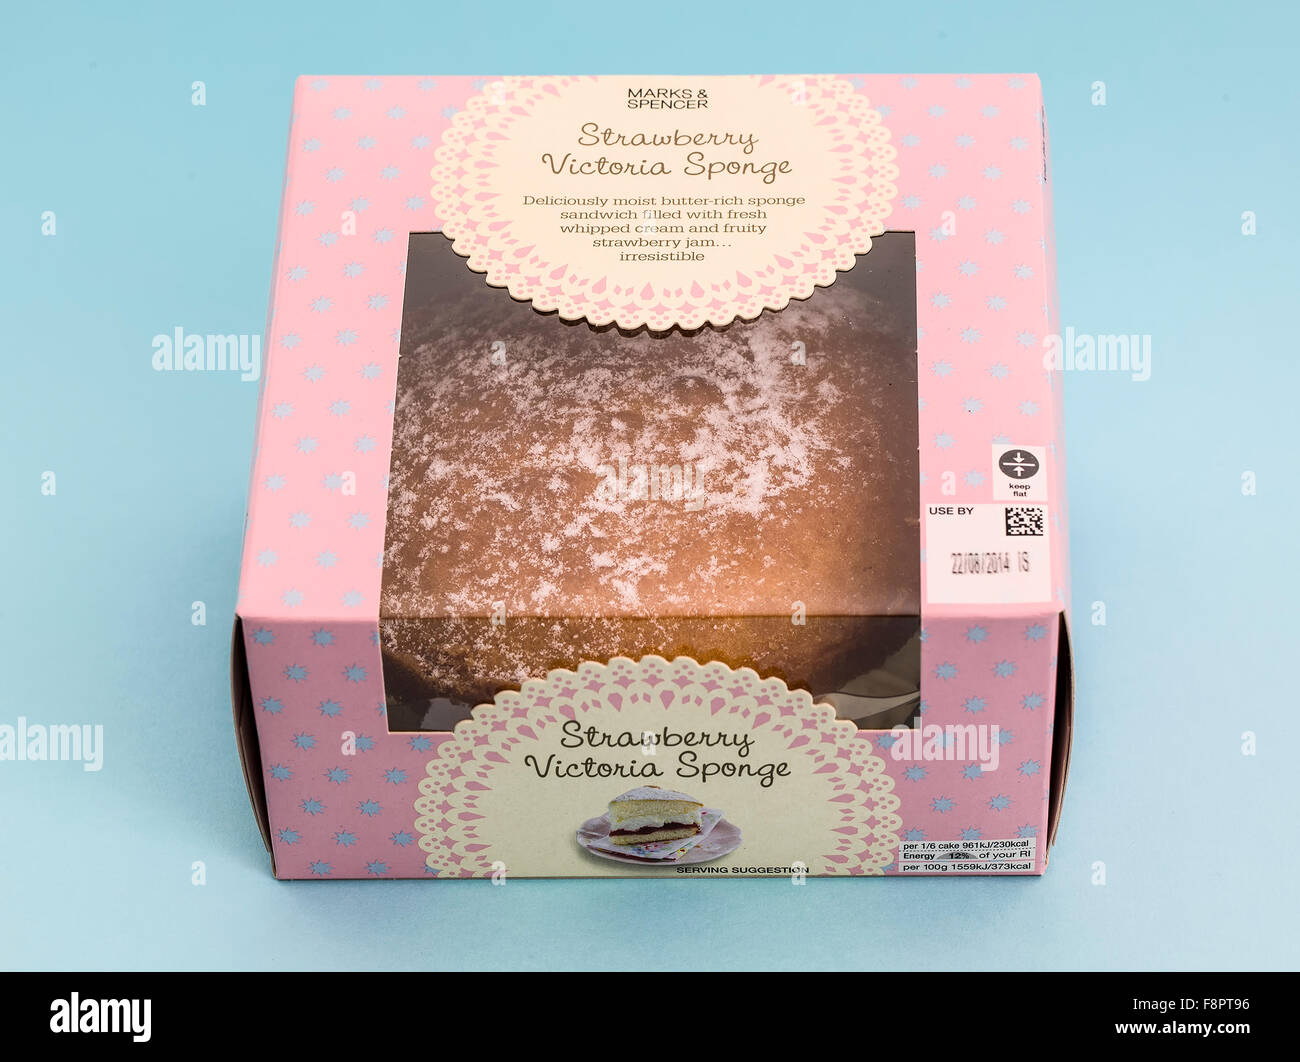 Marks And Spencer Strawberry Victoria Sponge Cake On A